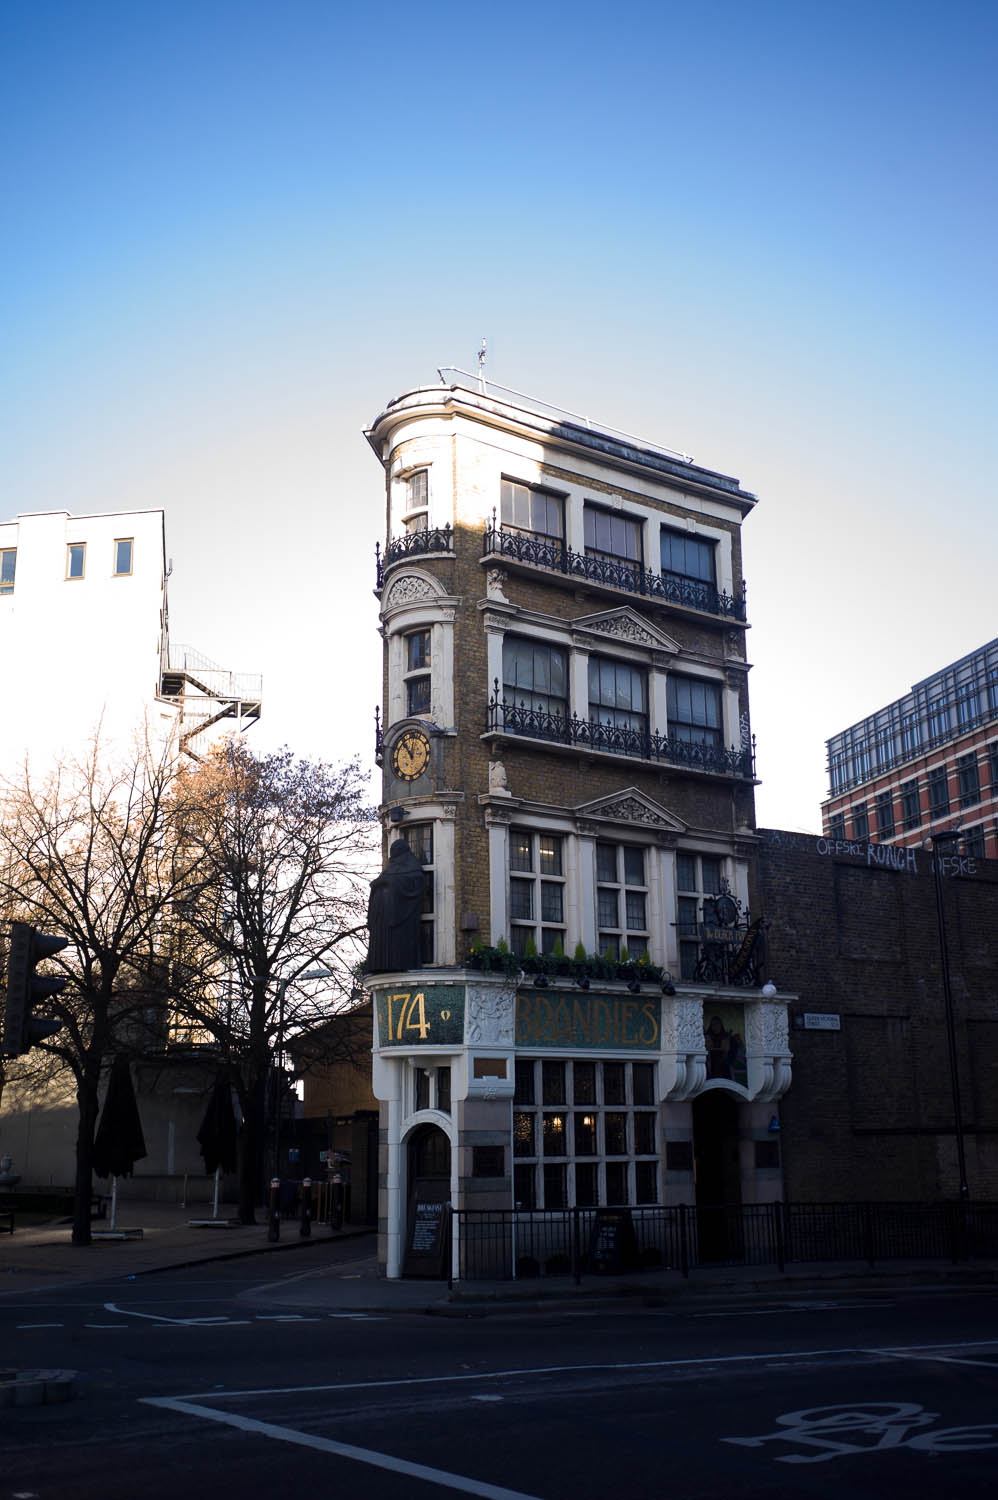 A narrow pub building near Blackfriars Station in London